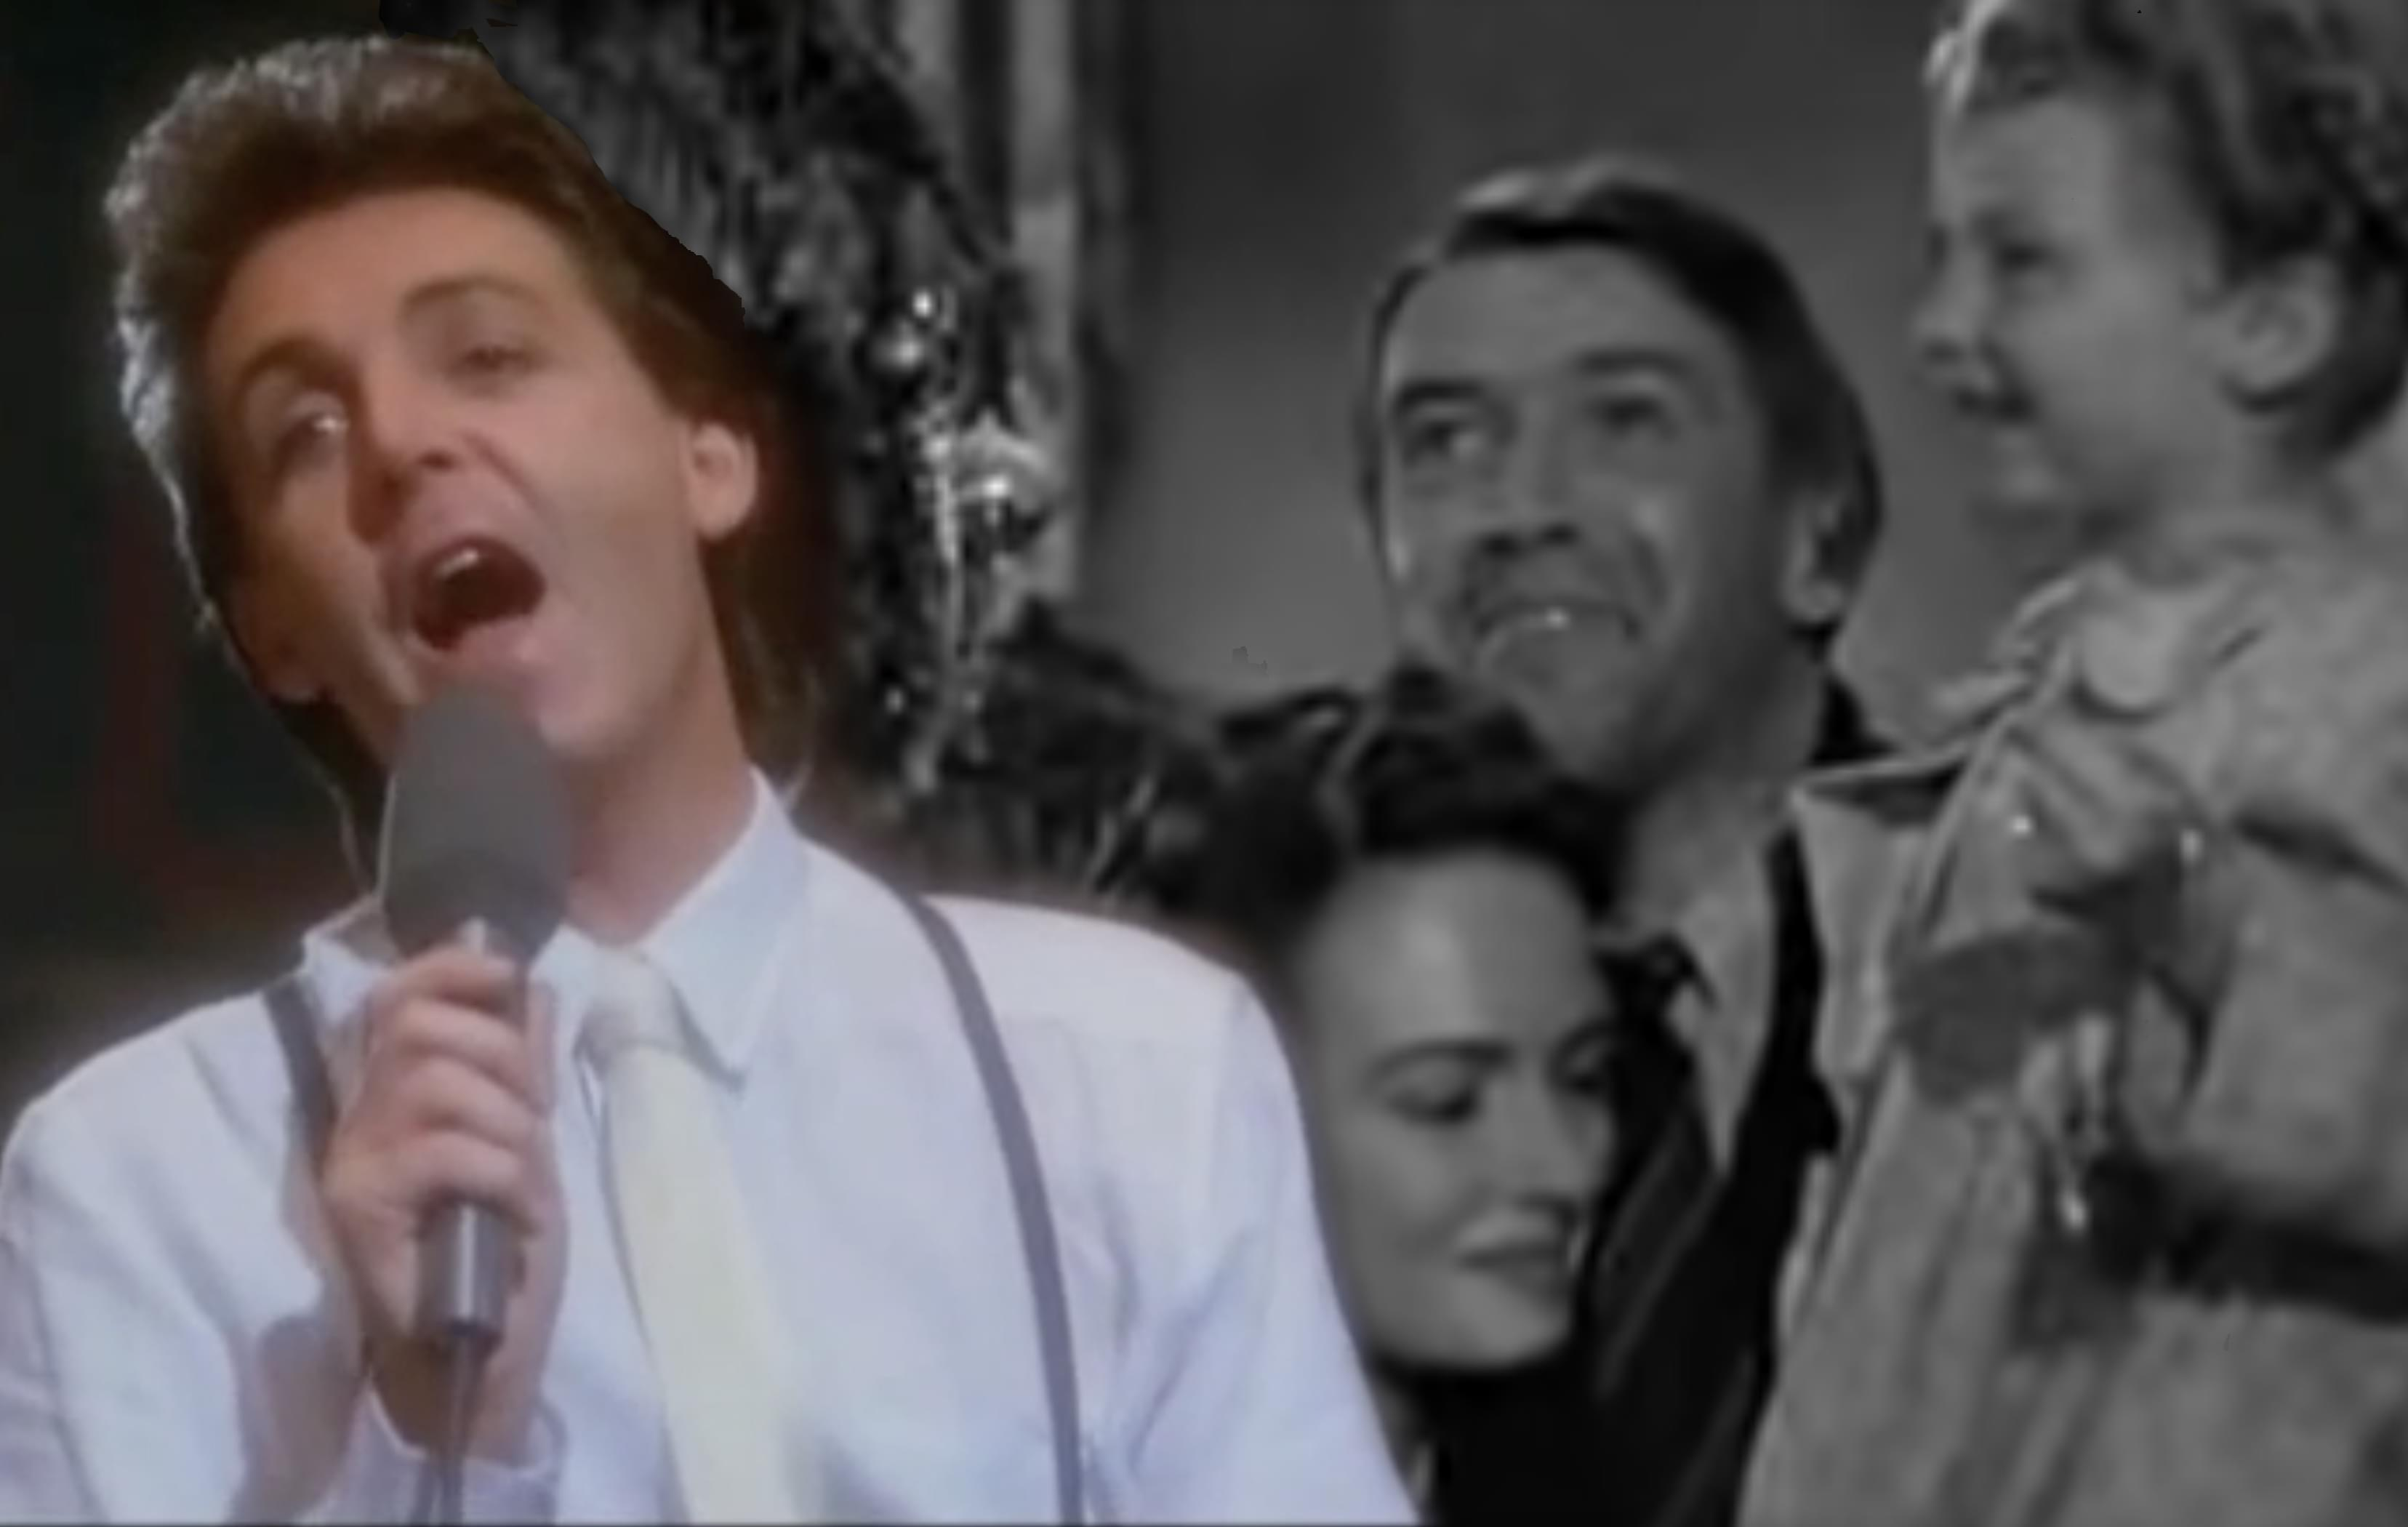 Paul McCartney writing score for 'It's A Wonderful Life' stage musical